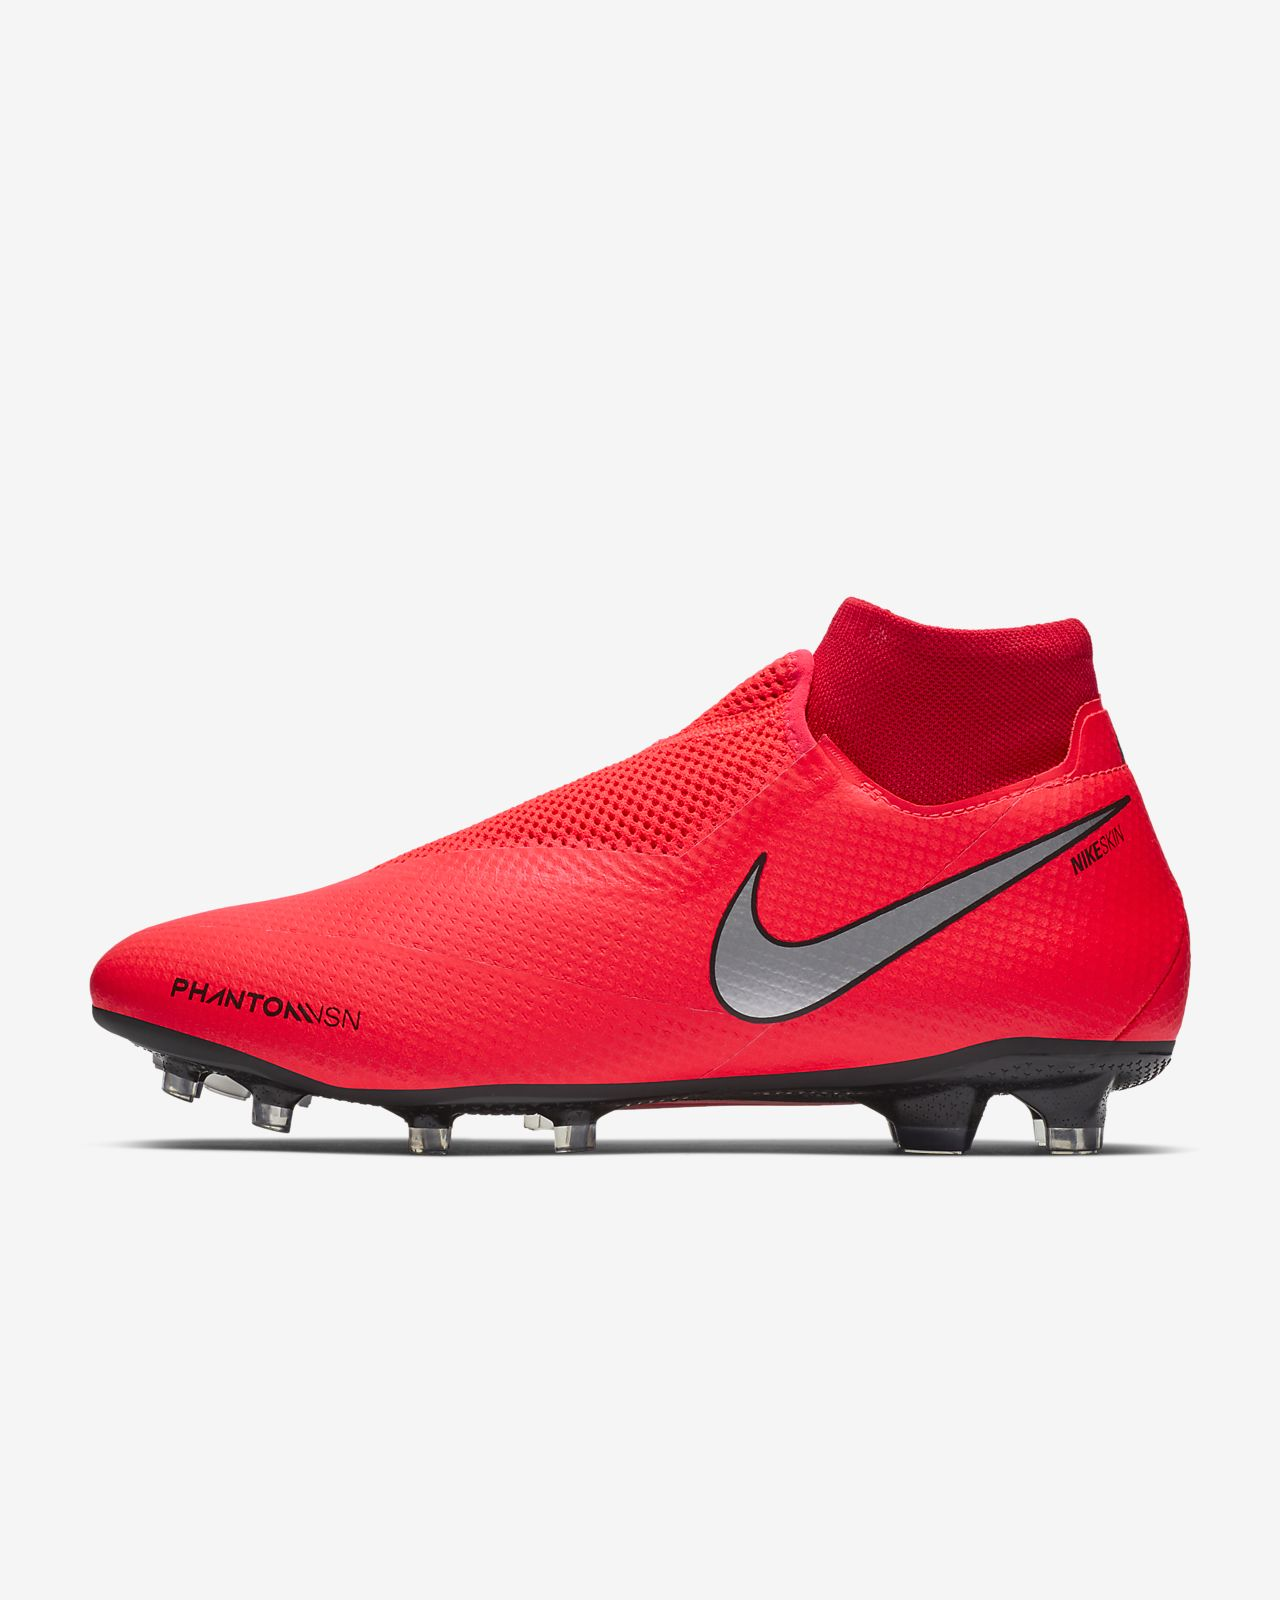 Calzado de fútbol para terreno firme Nike PhantomVSN Pro Dynamic Fit Game Over FG